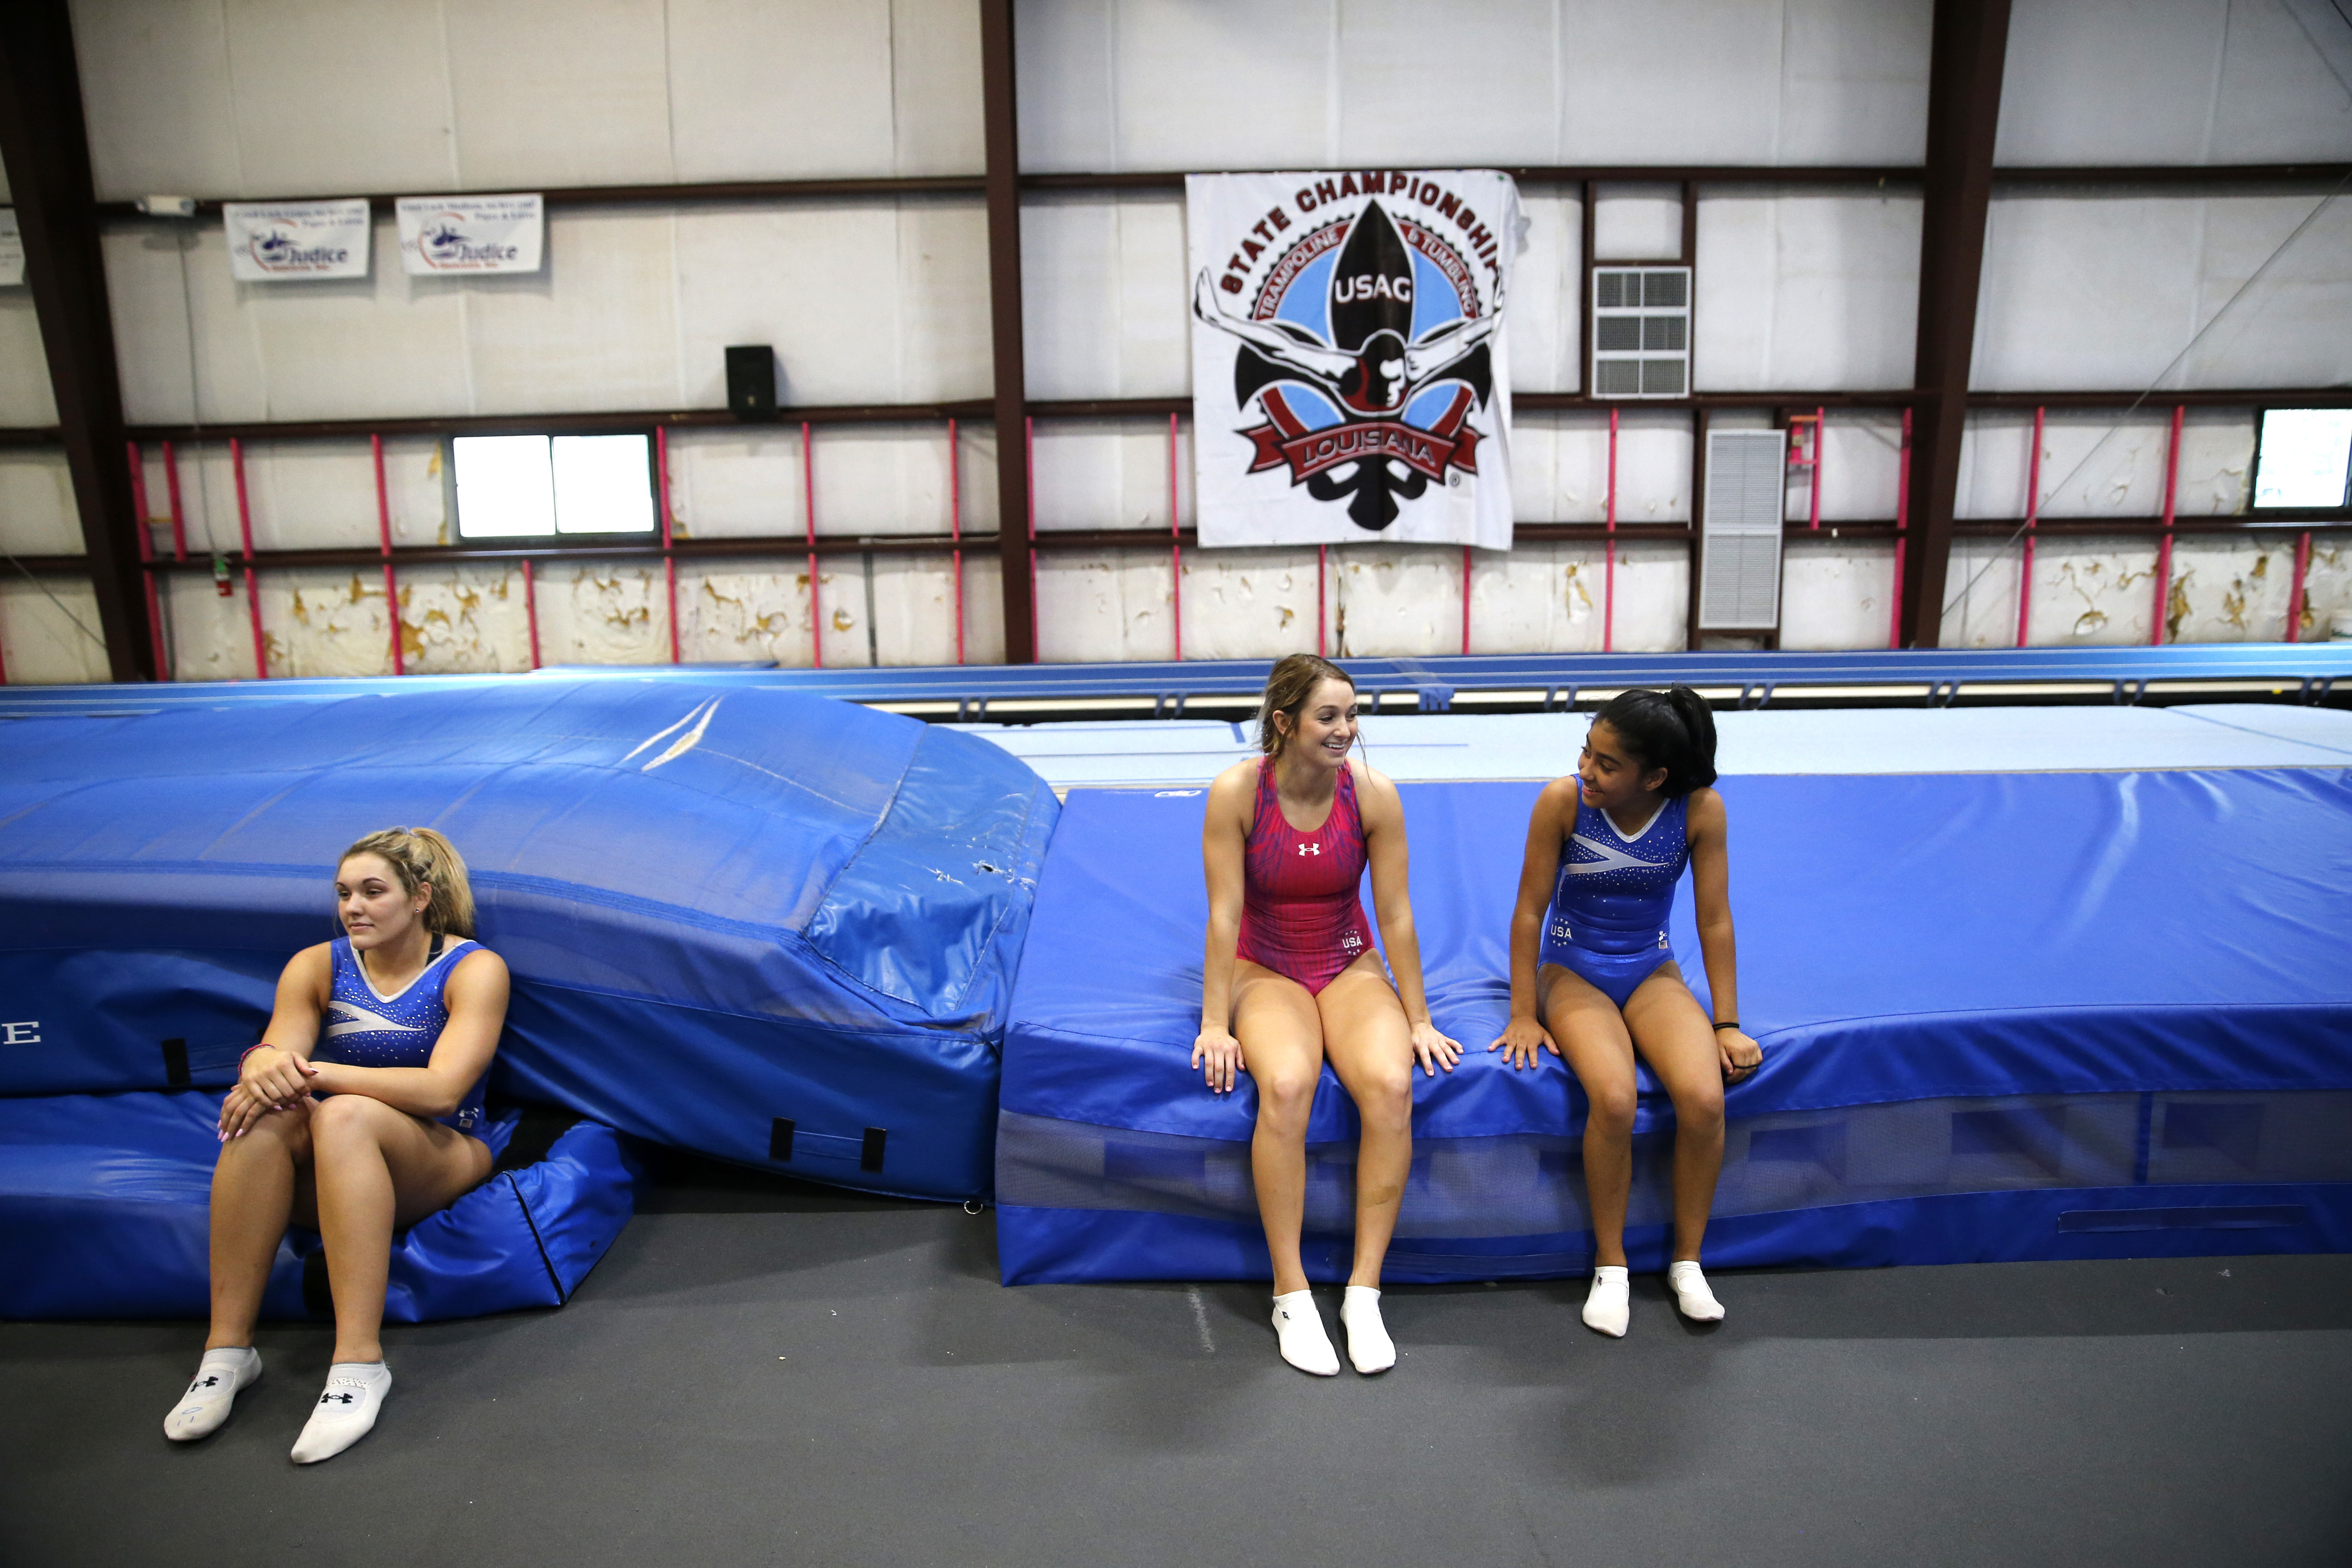 Dakota Earnest, left, Shaylee Dunavin and Ellen Heinen, right, take a break during practice in Lafayette, La., Wednesday, May 25, 2016. They are training for trials that begin June 11 in Providence, R.I., which will decide which man and woman will represe